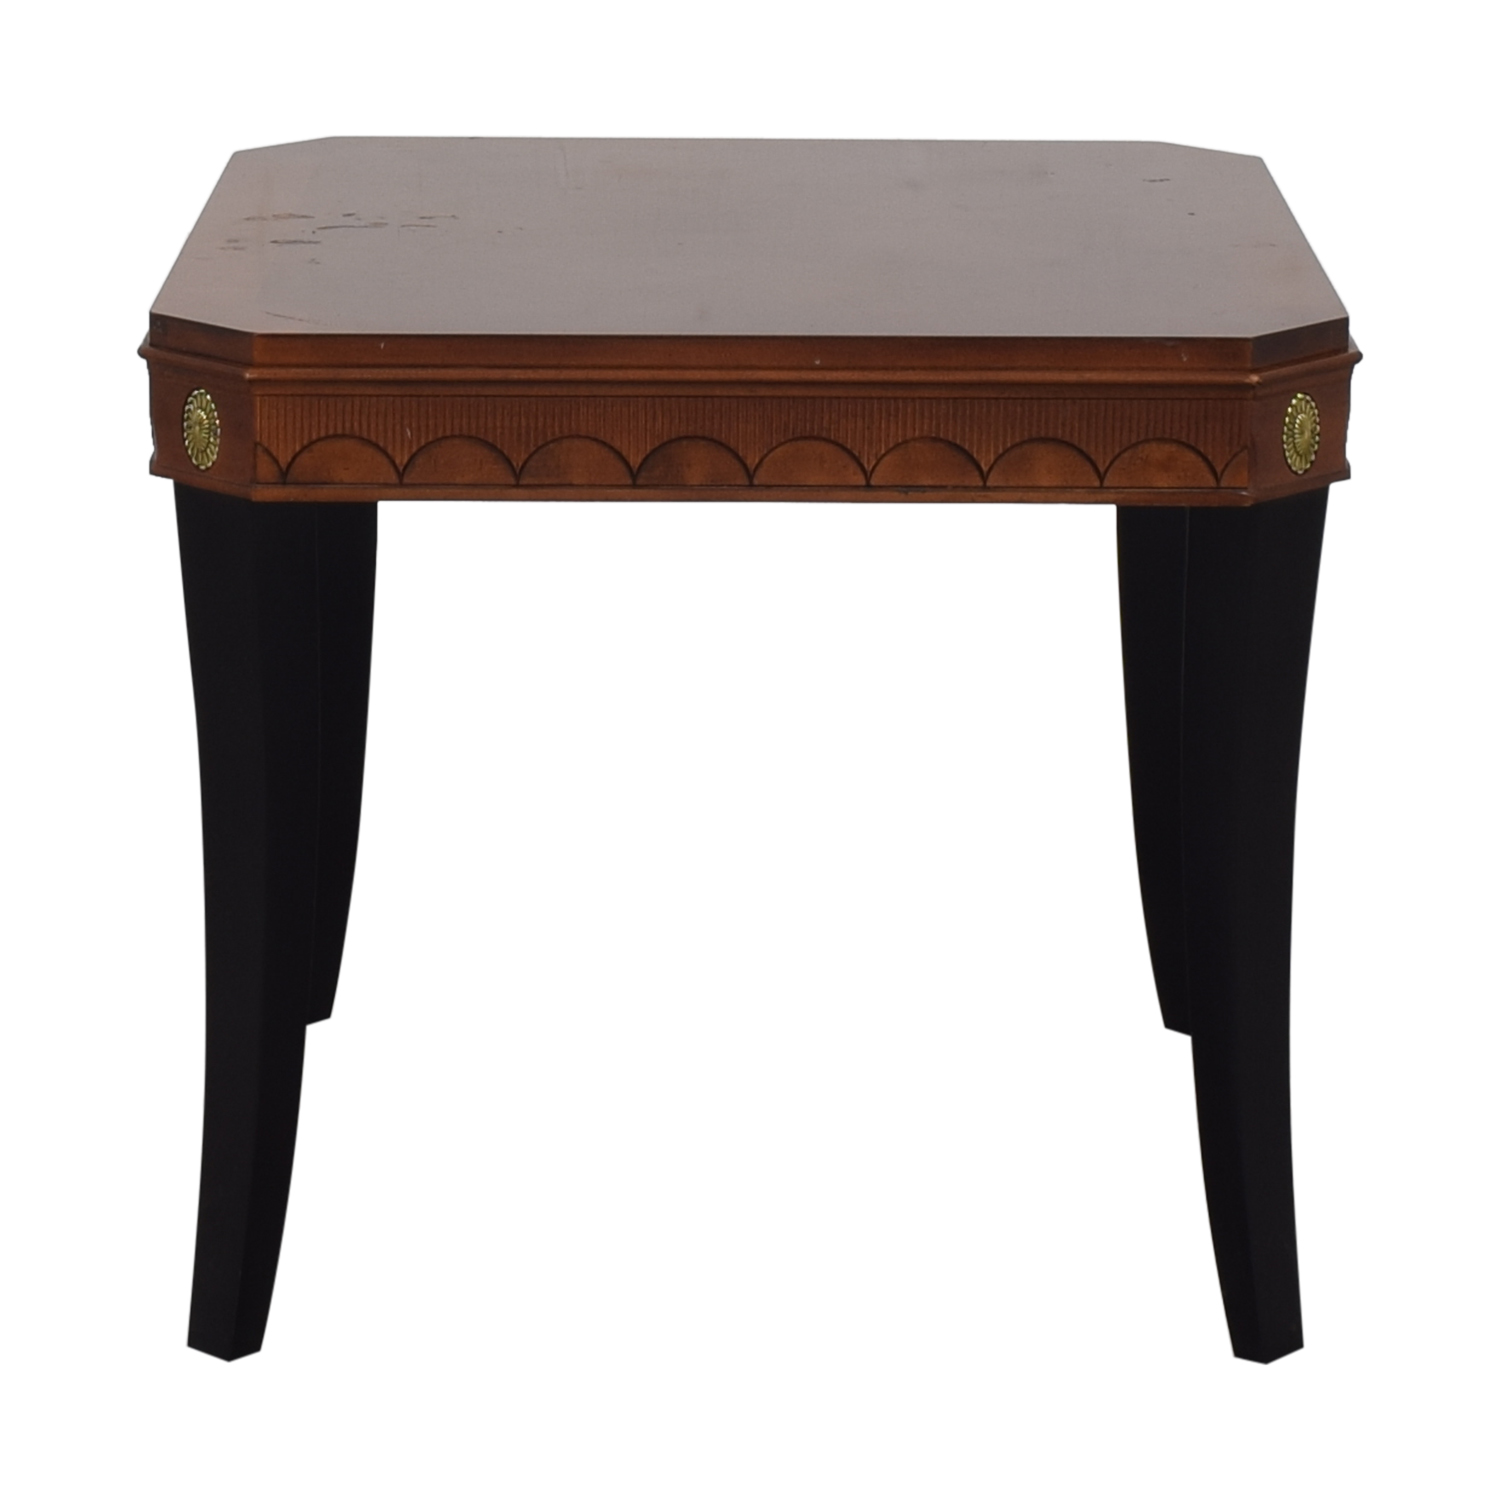 Ethan Allen Ethan Allen End Table discount